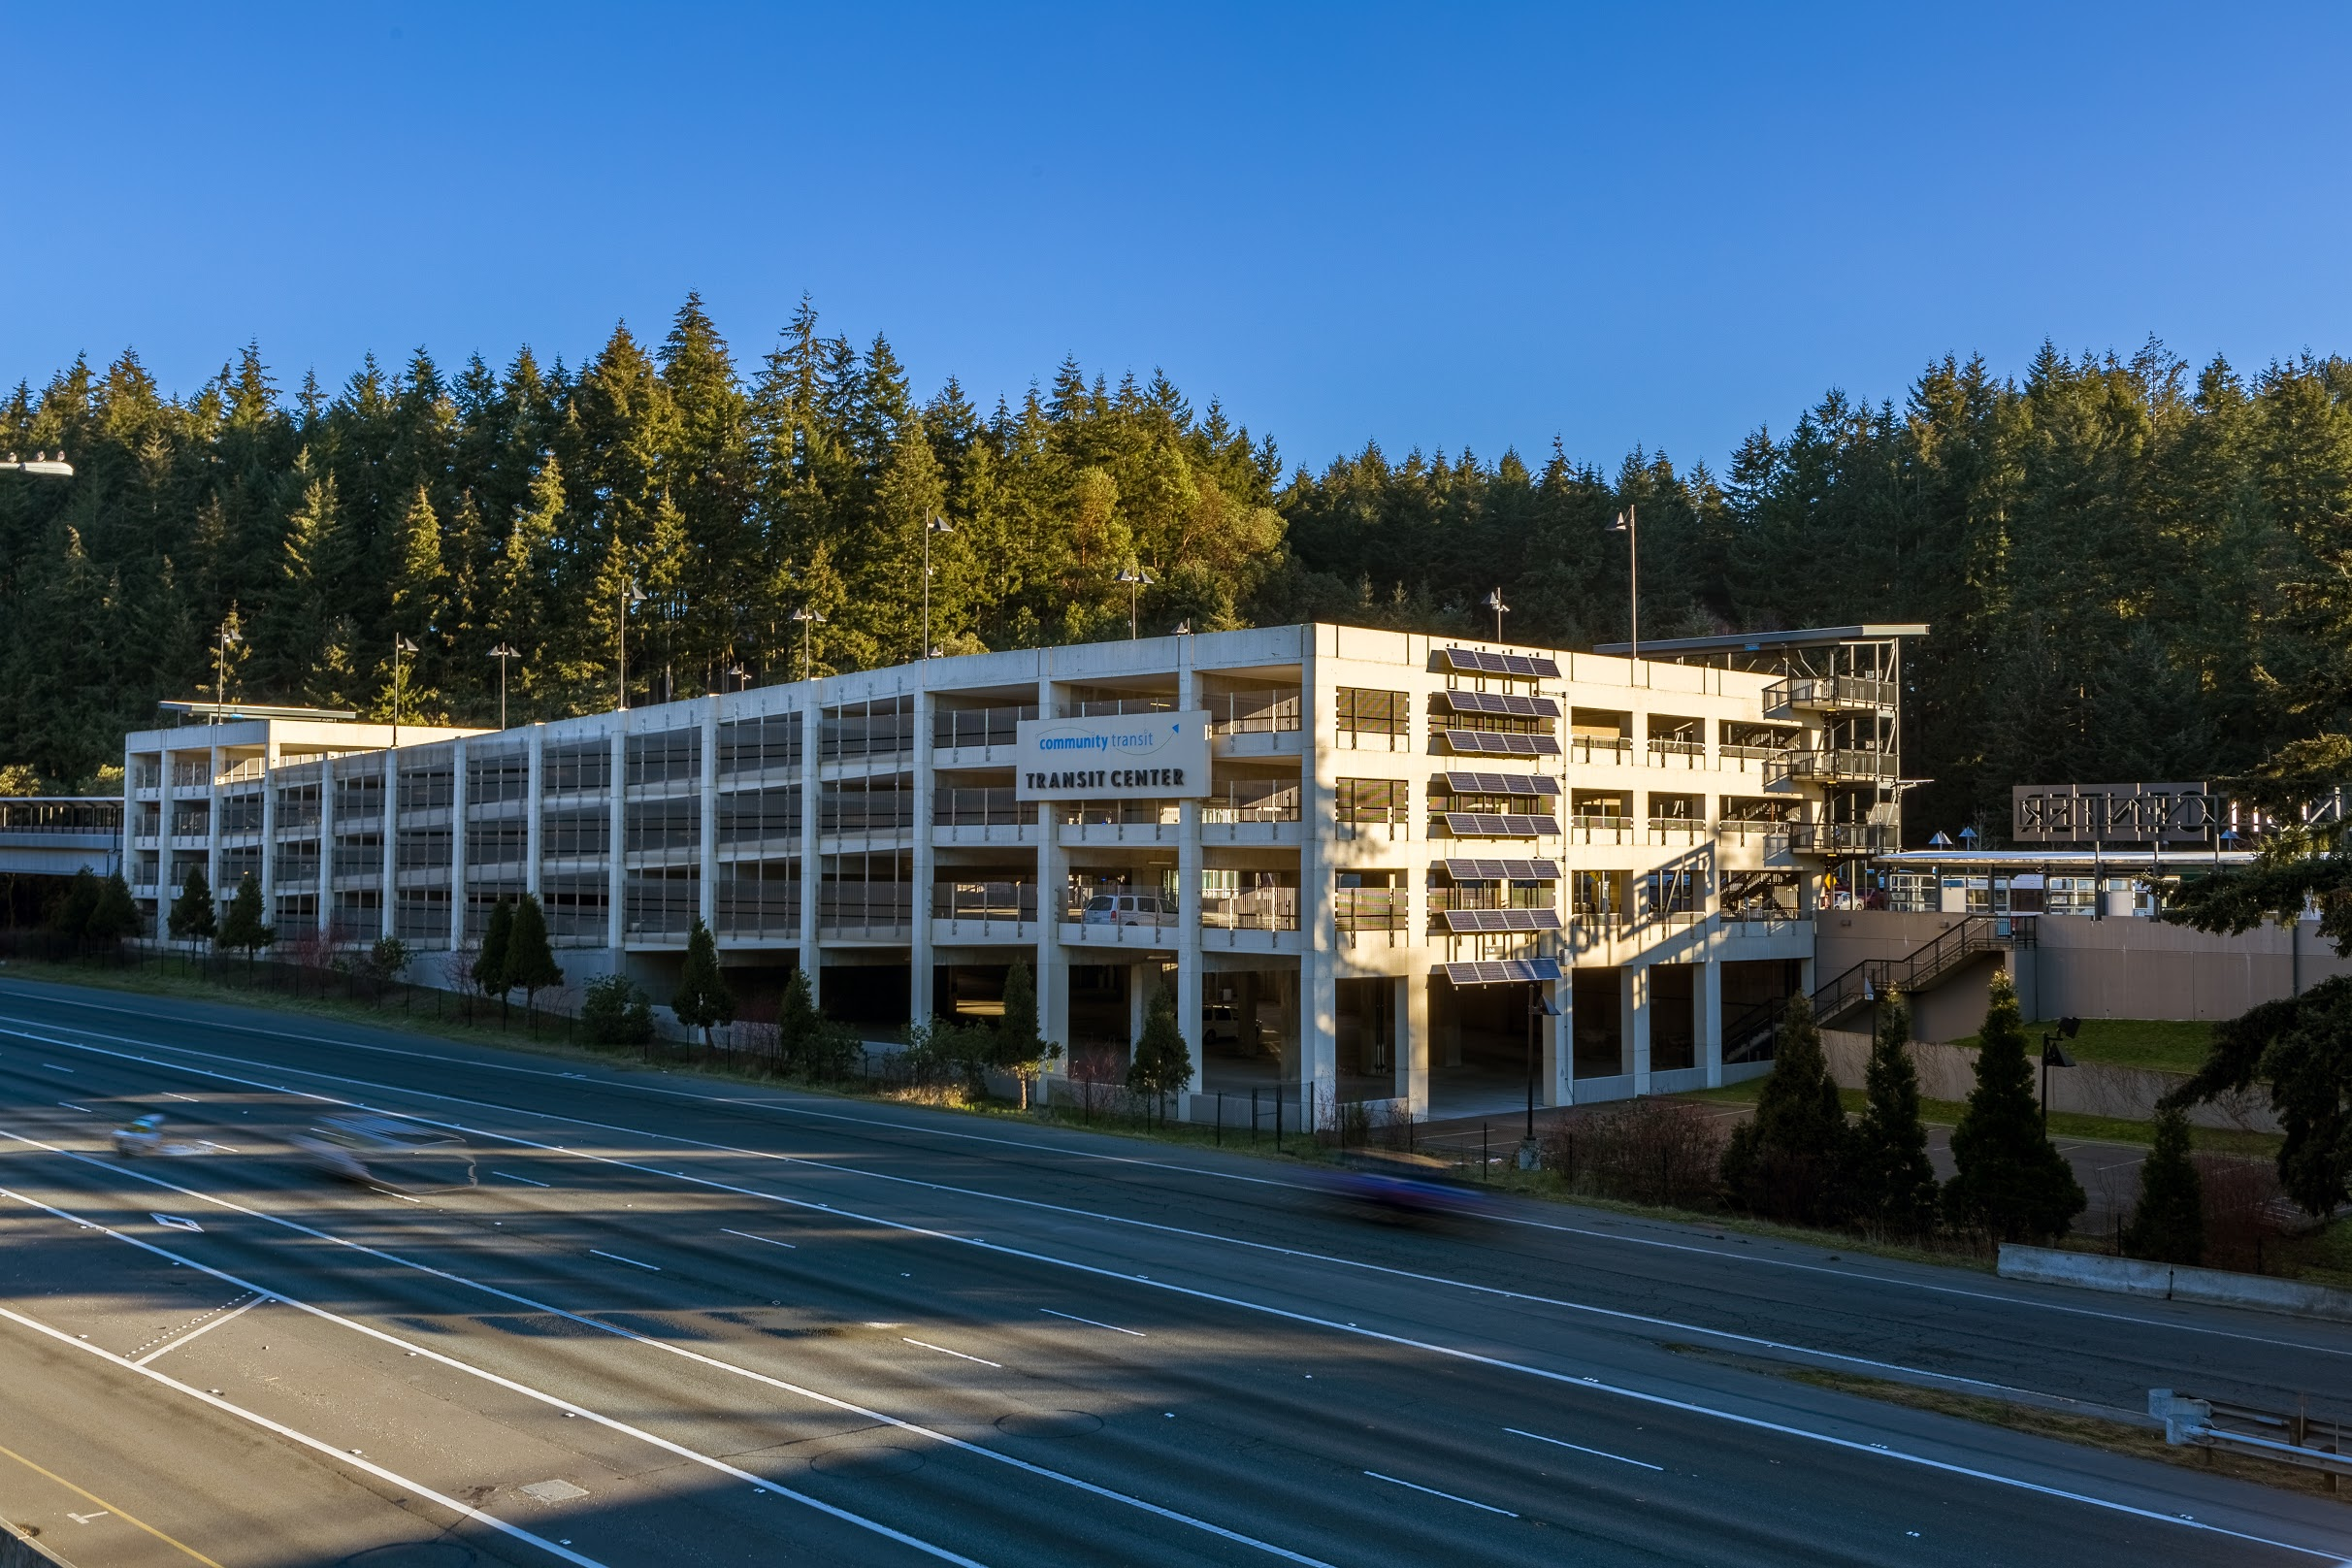 WindermereNorth_MountlakeTerrace_TransitCenter_3.jpg